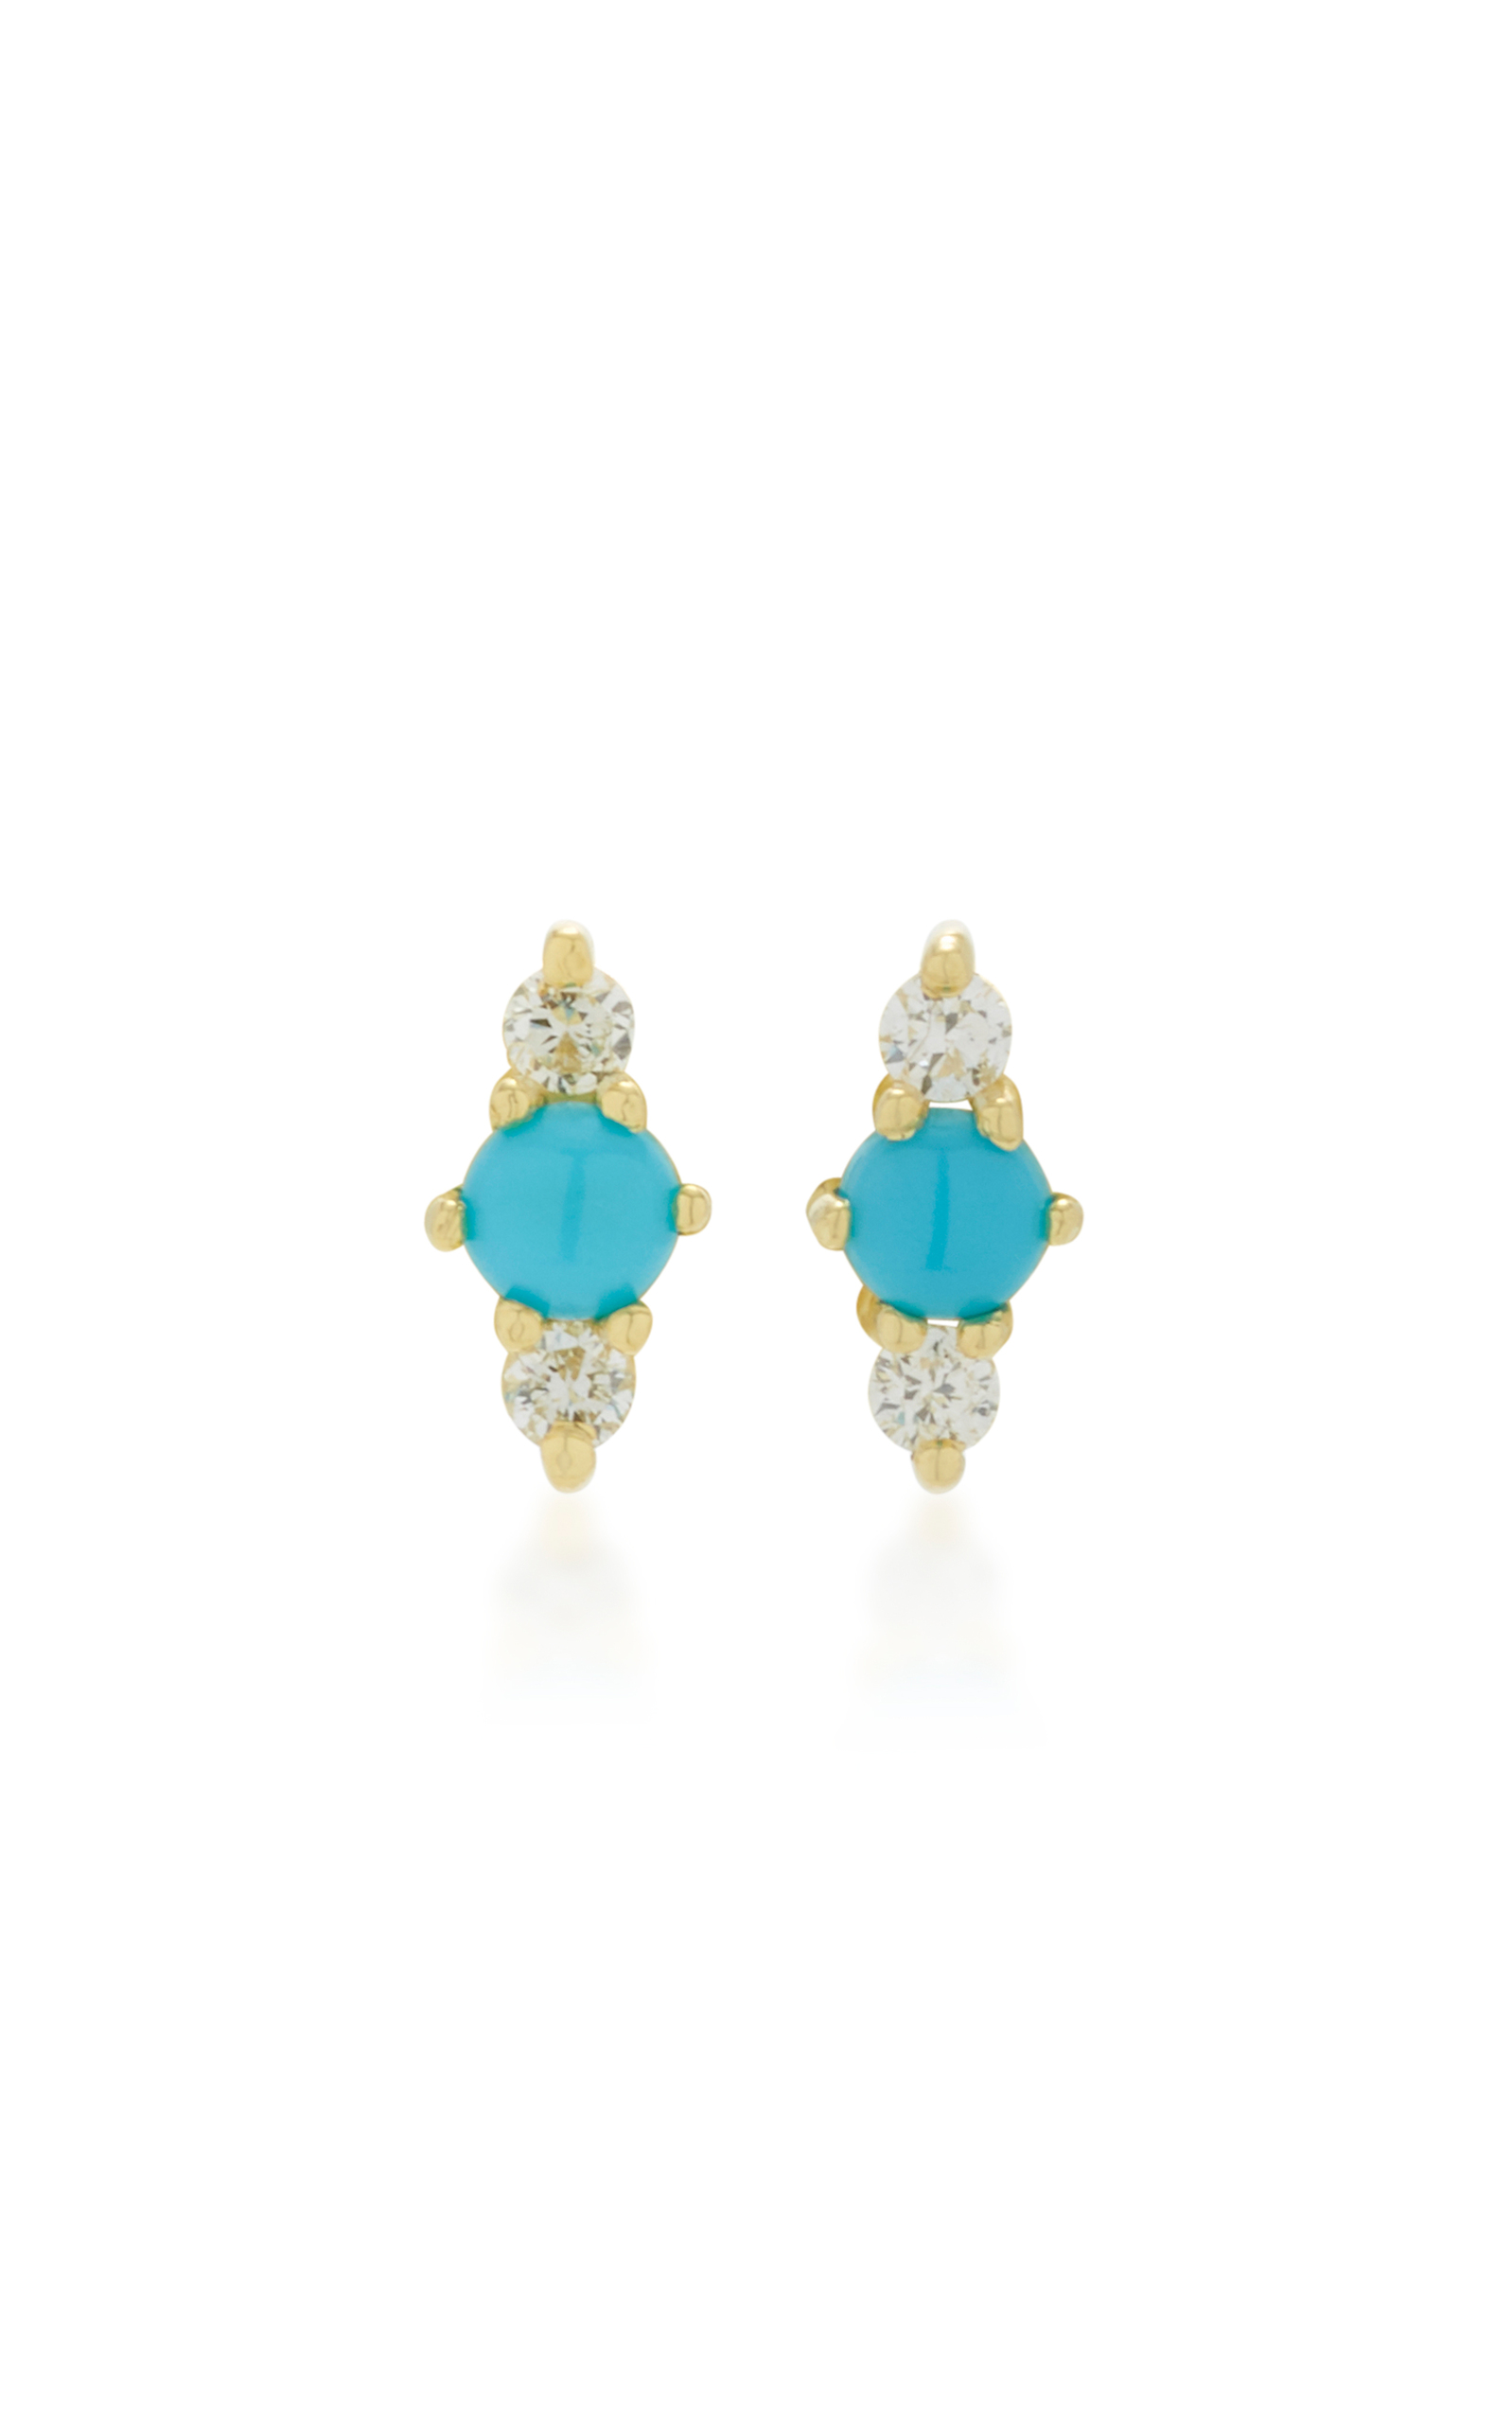 Ila Hanley 14k Gold Turquoise And Diamond Earrings In Blue